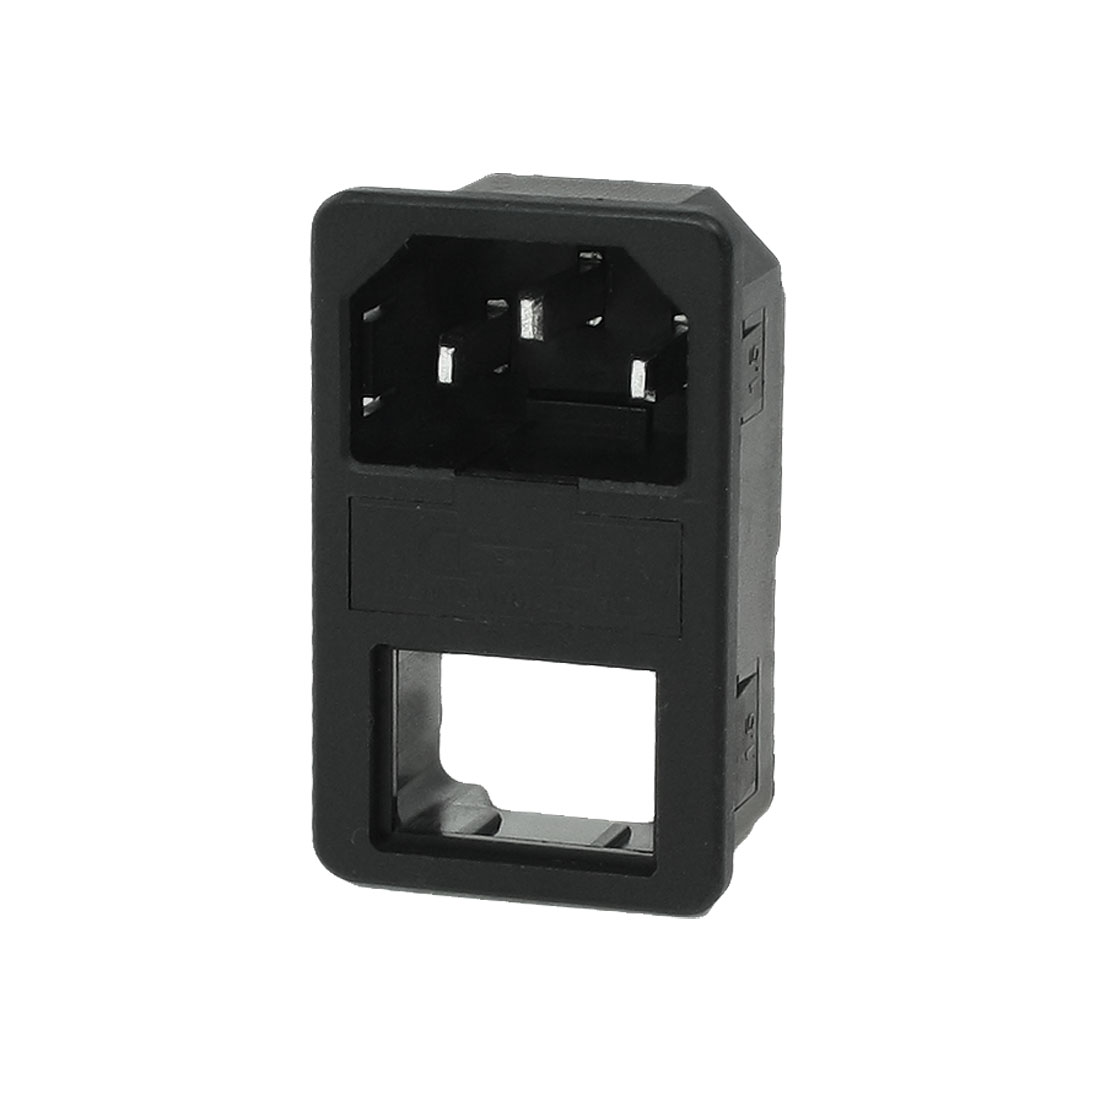 Cut Out Rocker Switch Holder IEC 60320 Male Power Supply Plug 10A AC 250V